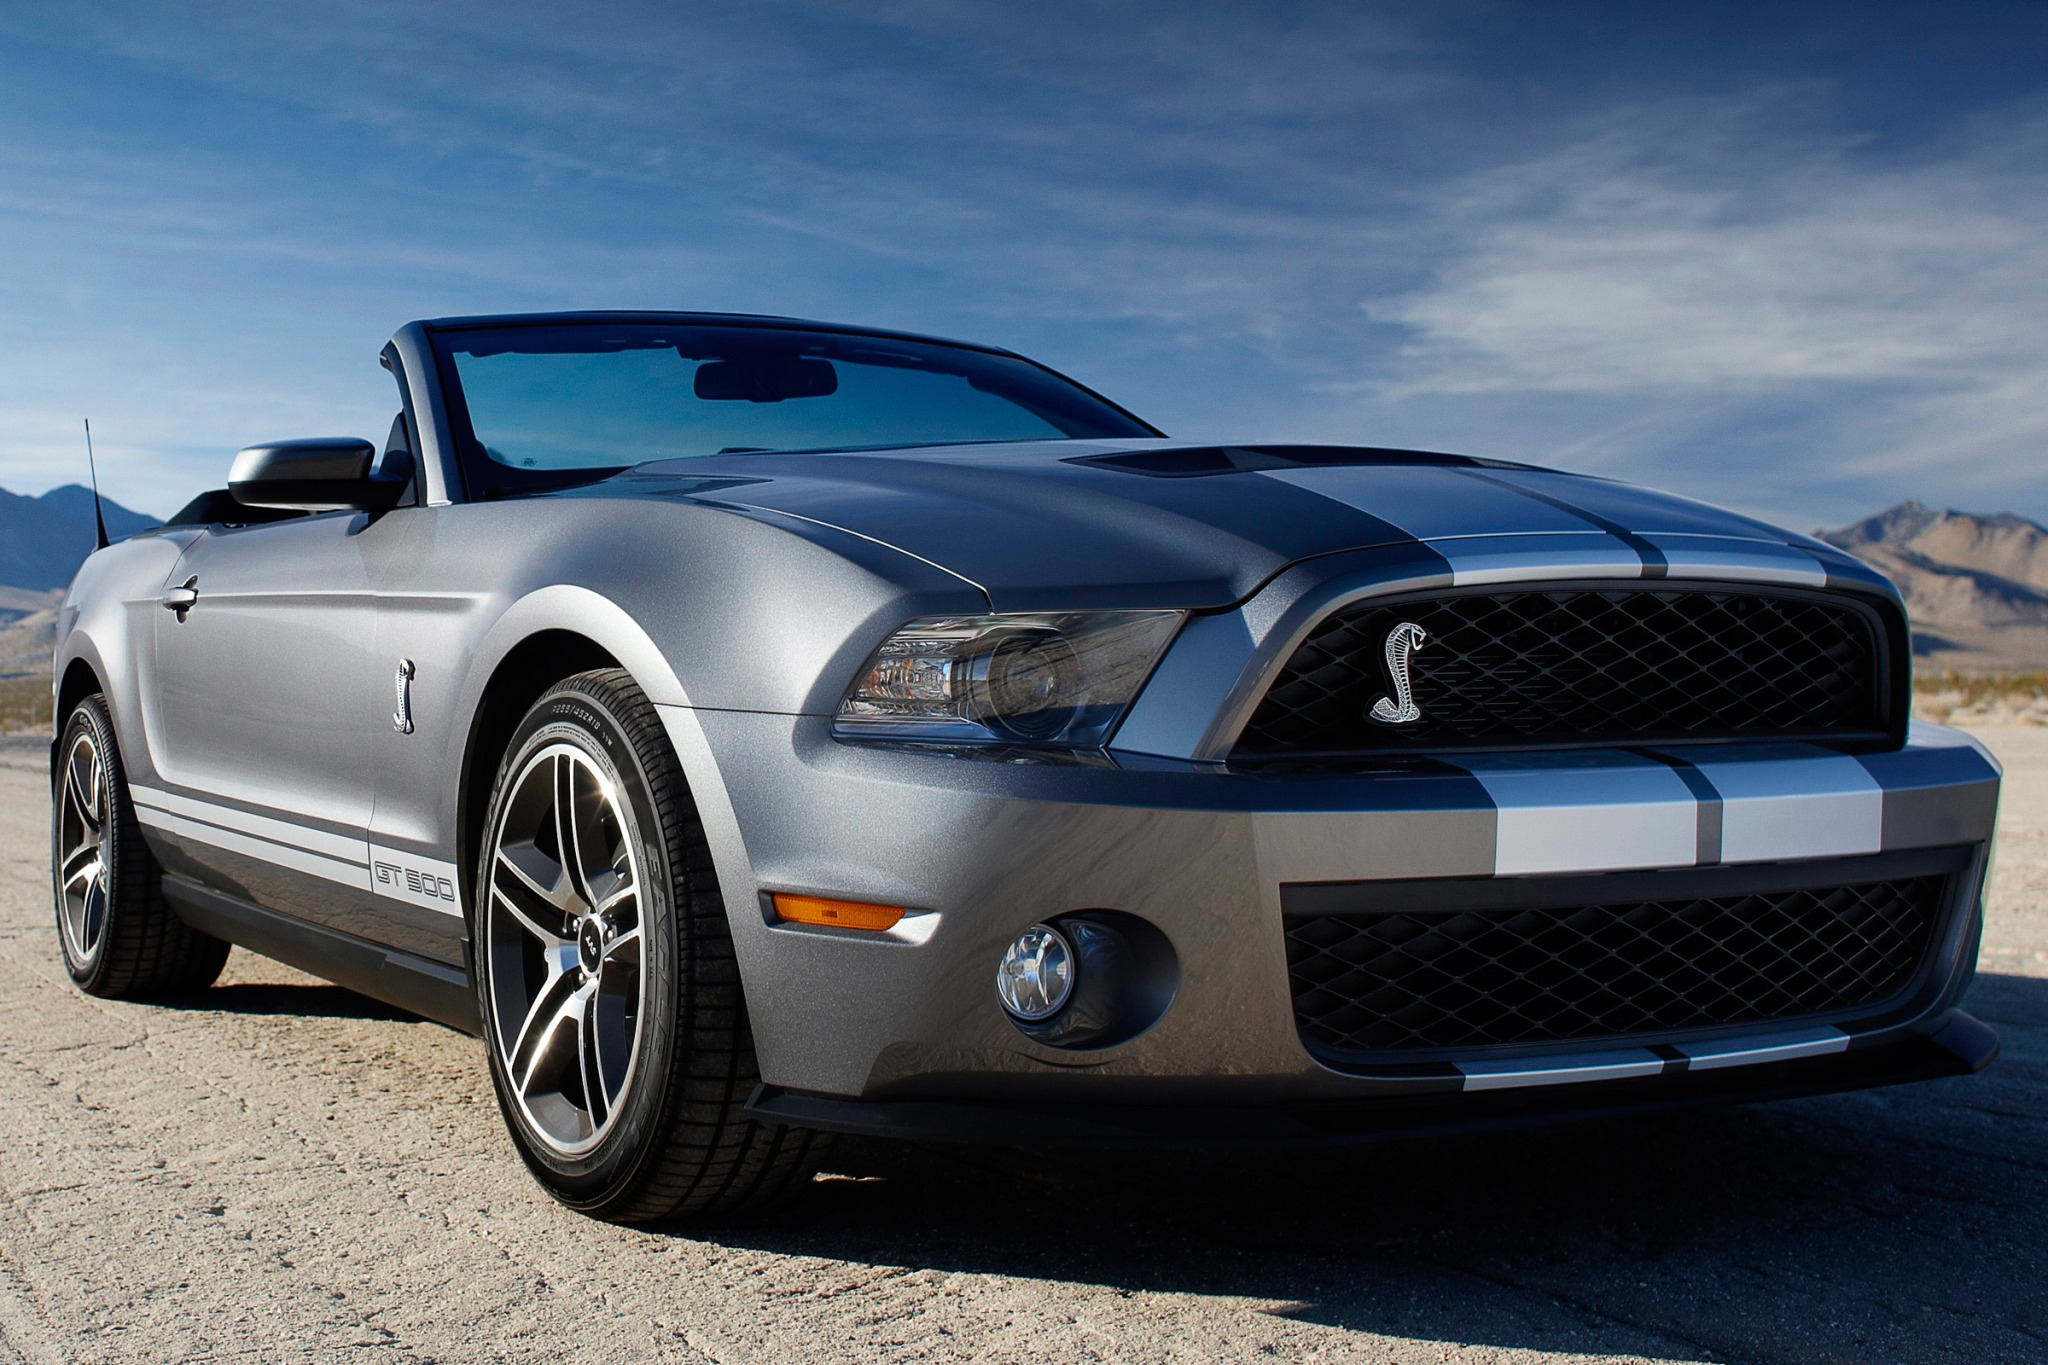 2010 Ford Shelby GT500 Ba exterior #4